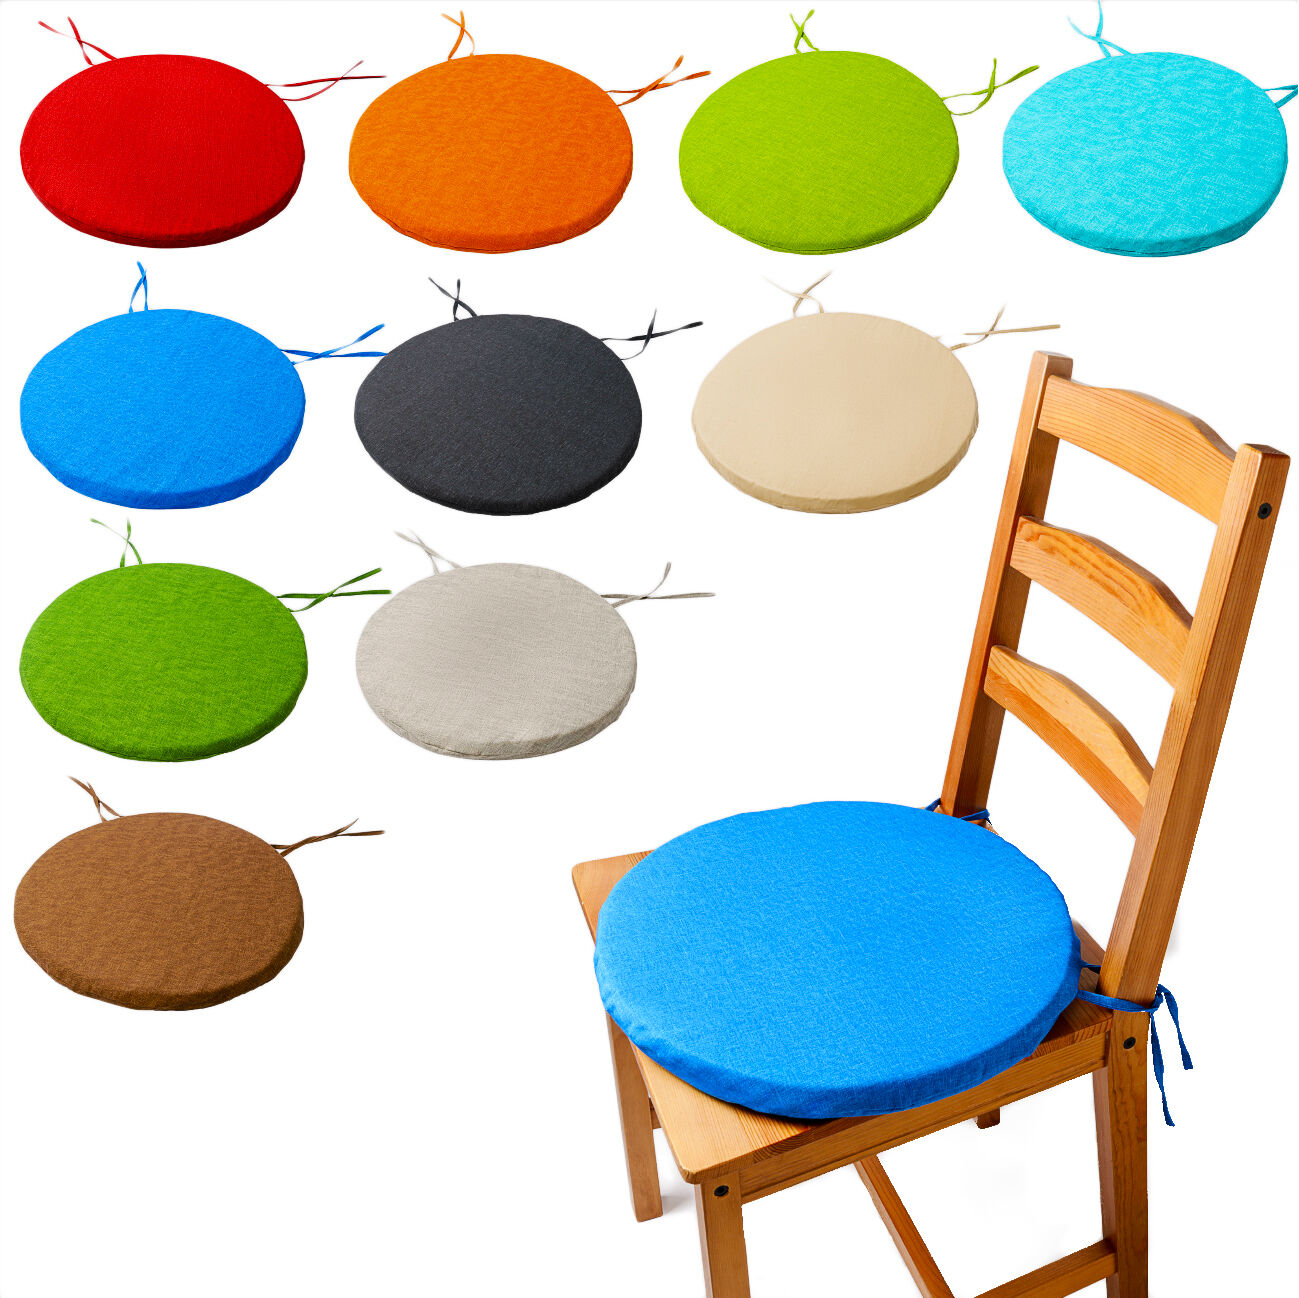 30cm Round Circular Chair Cushion Seat Pads Removable Cover Bistro Office Home For Sale Ebay